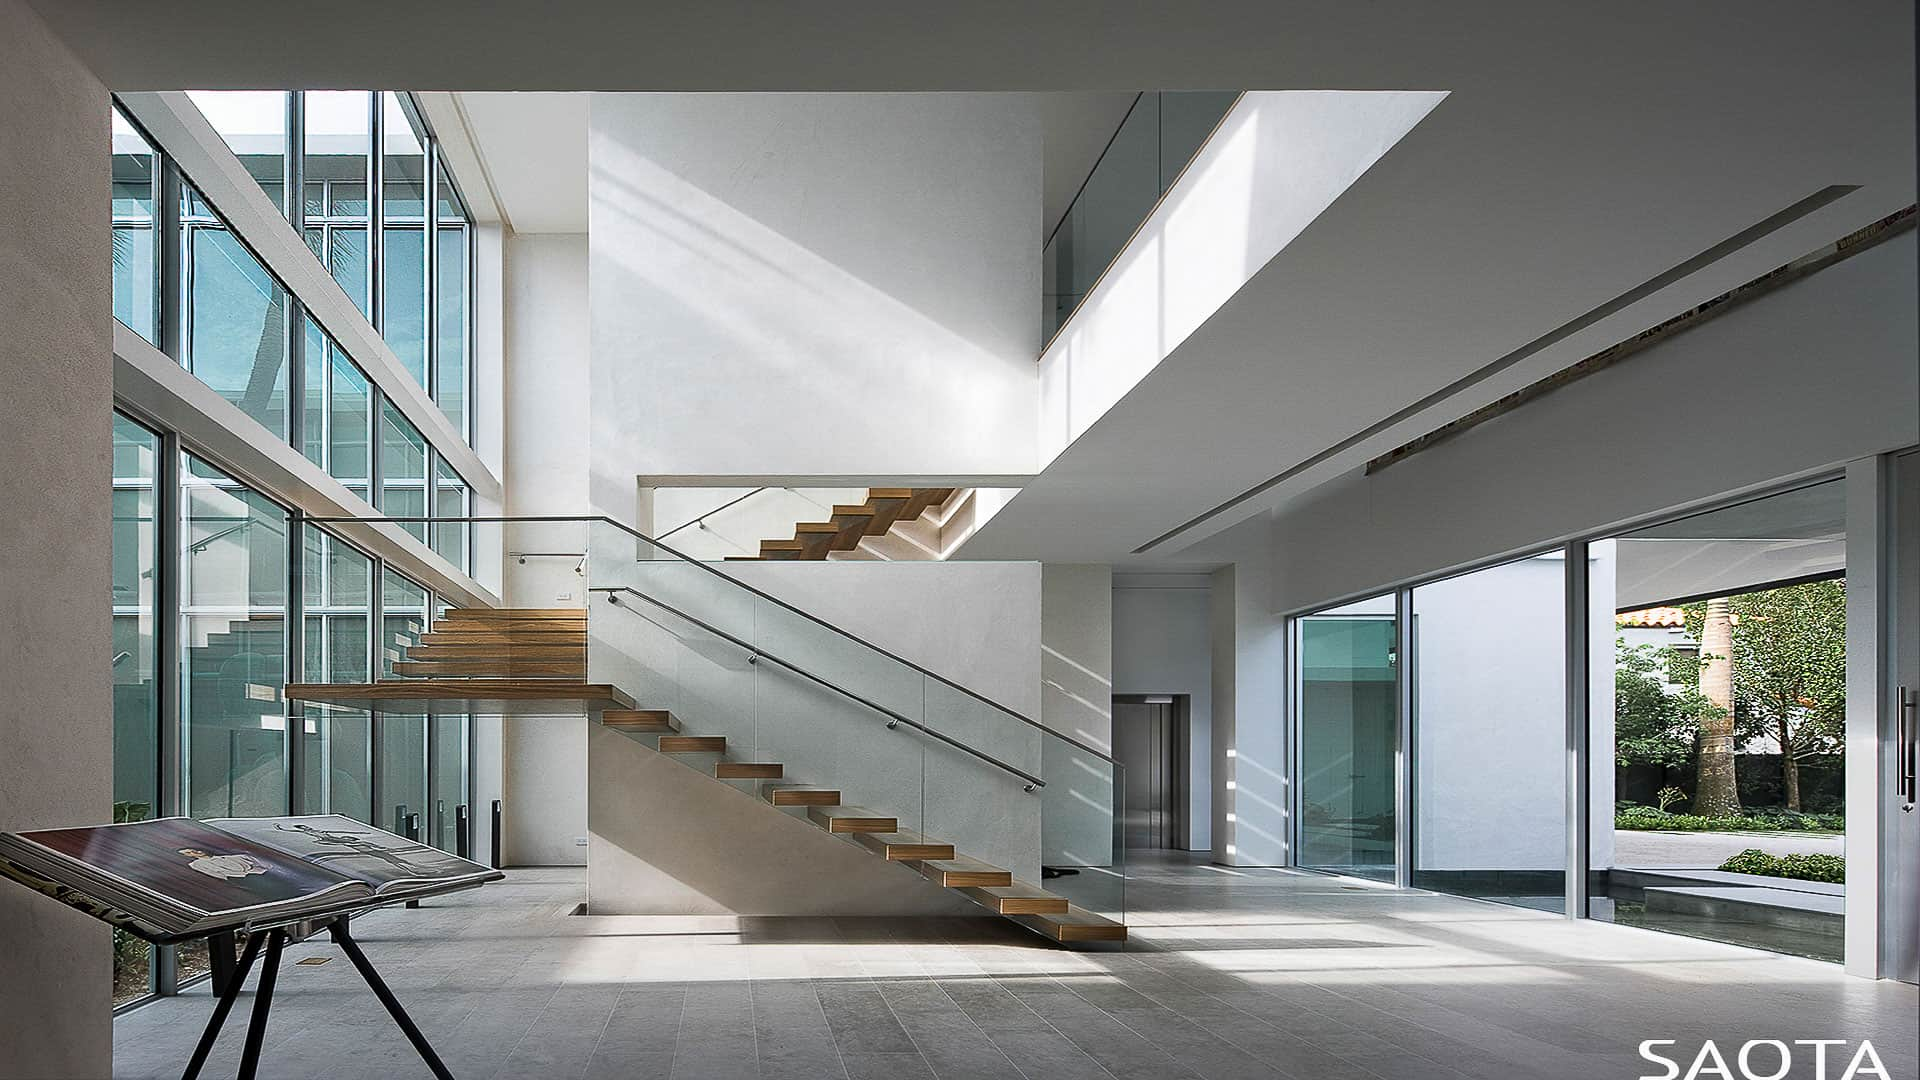 Large modern foyer with white walls and glass walls and windows overlooking the outdoor space.